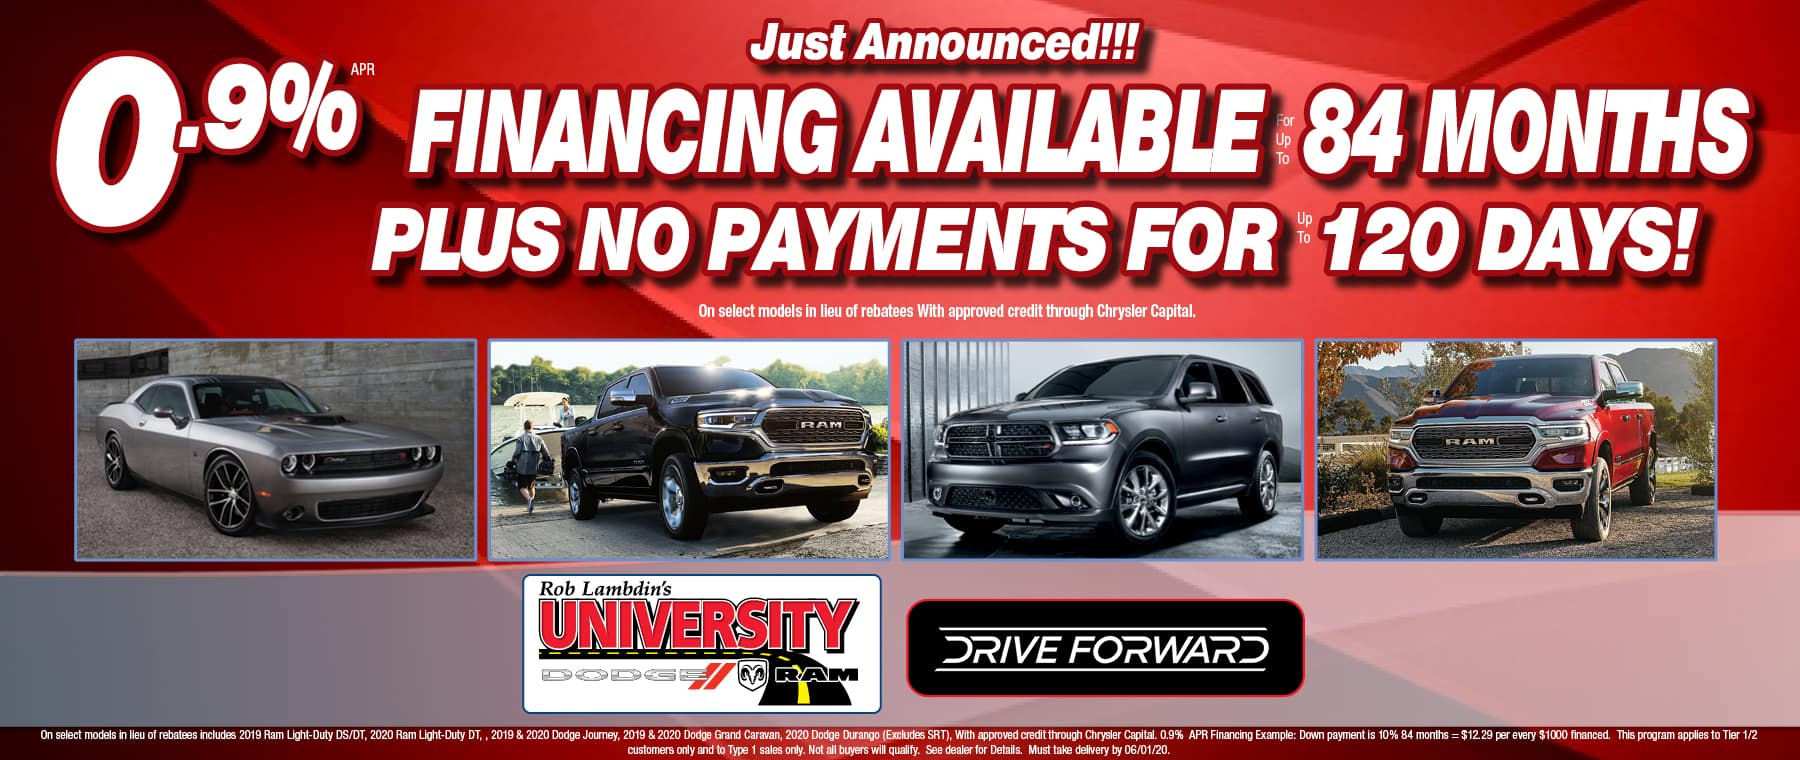 0.9$ Financing for 84 Months!